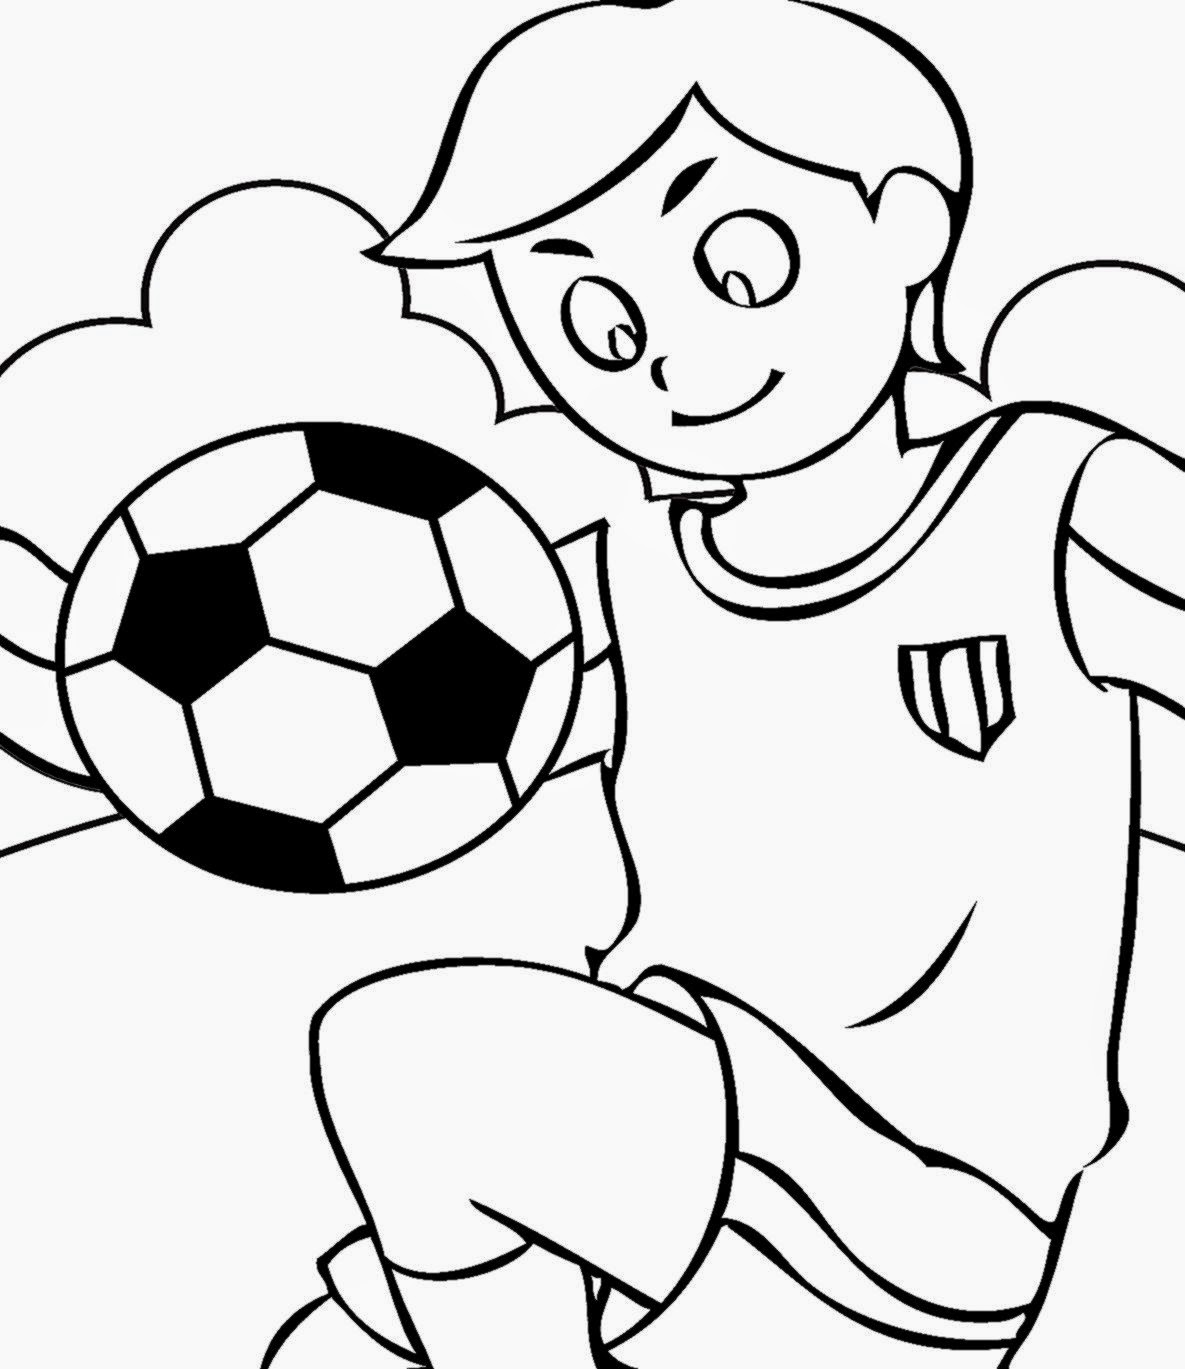 Soccer coloring sheets free coloring sheet for Coloring pages toddler